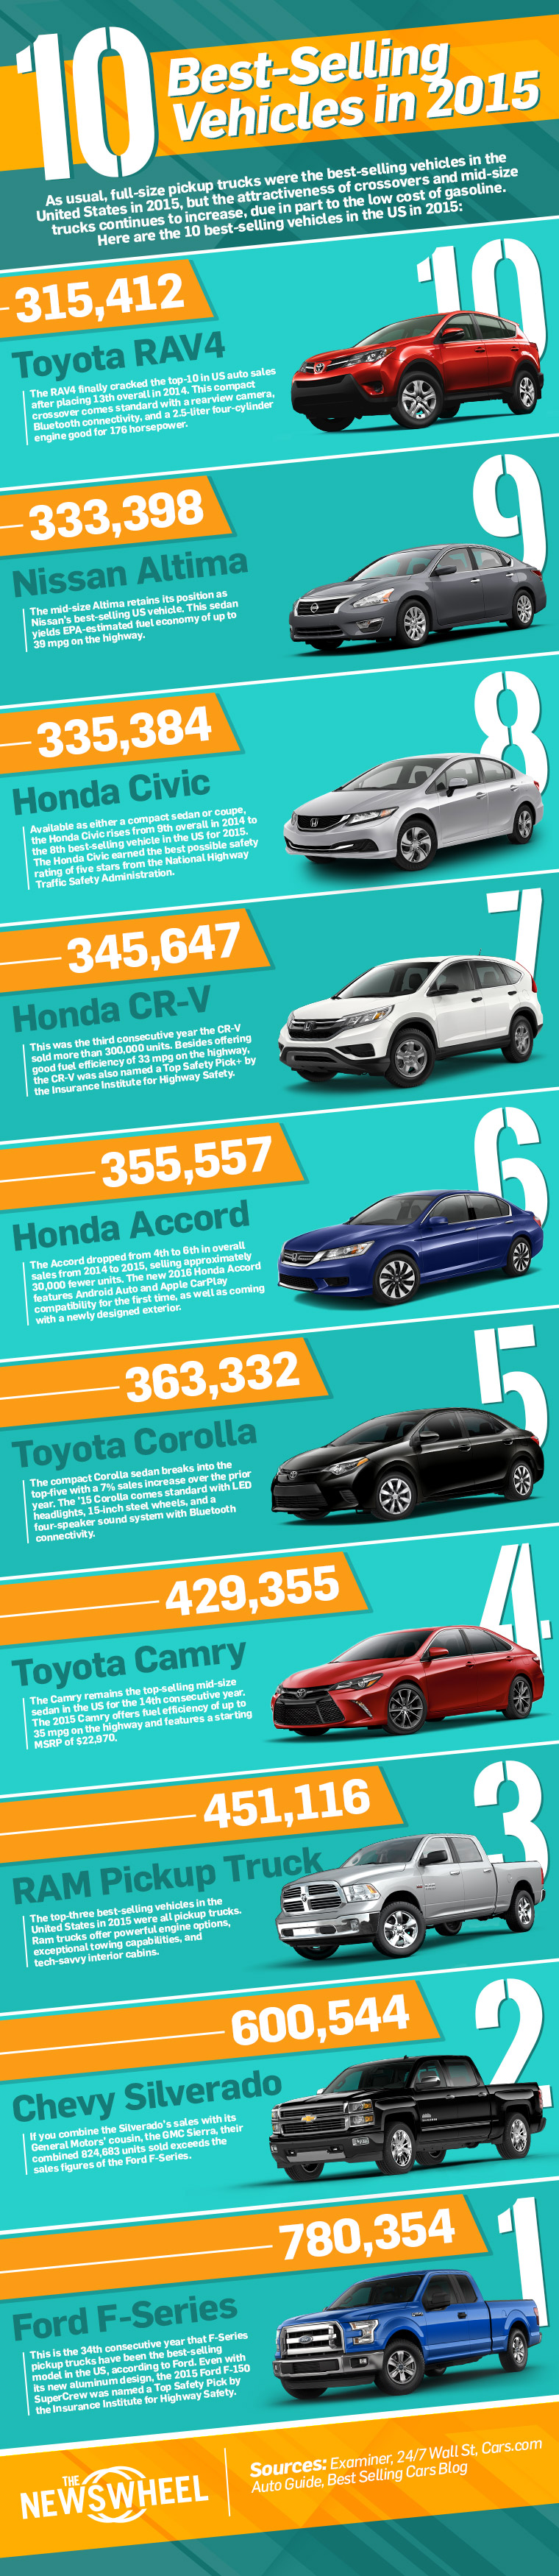 The 10 best selling automobiles in the US include the usual suspects and a few surprises